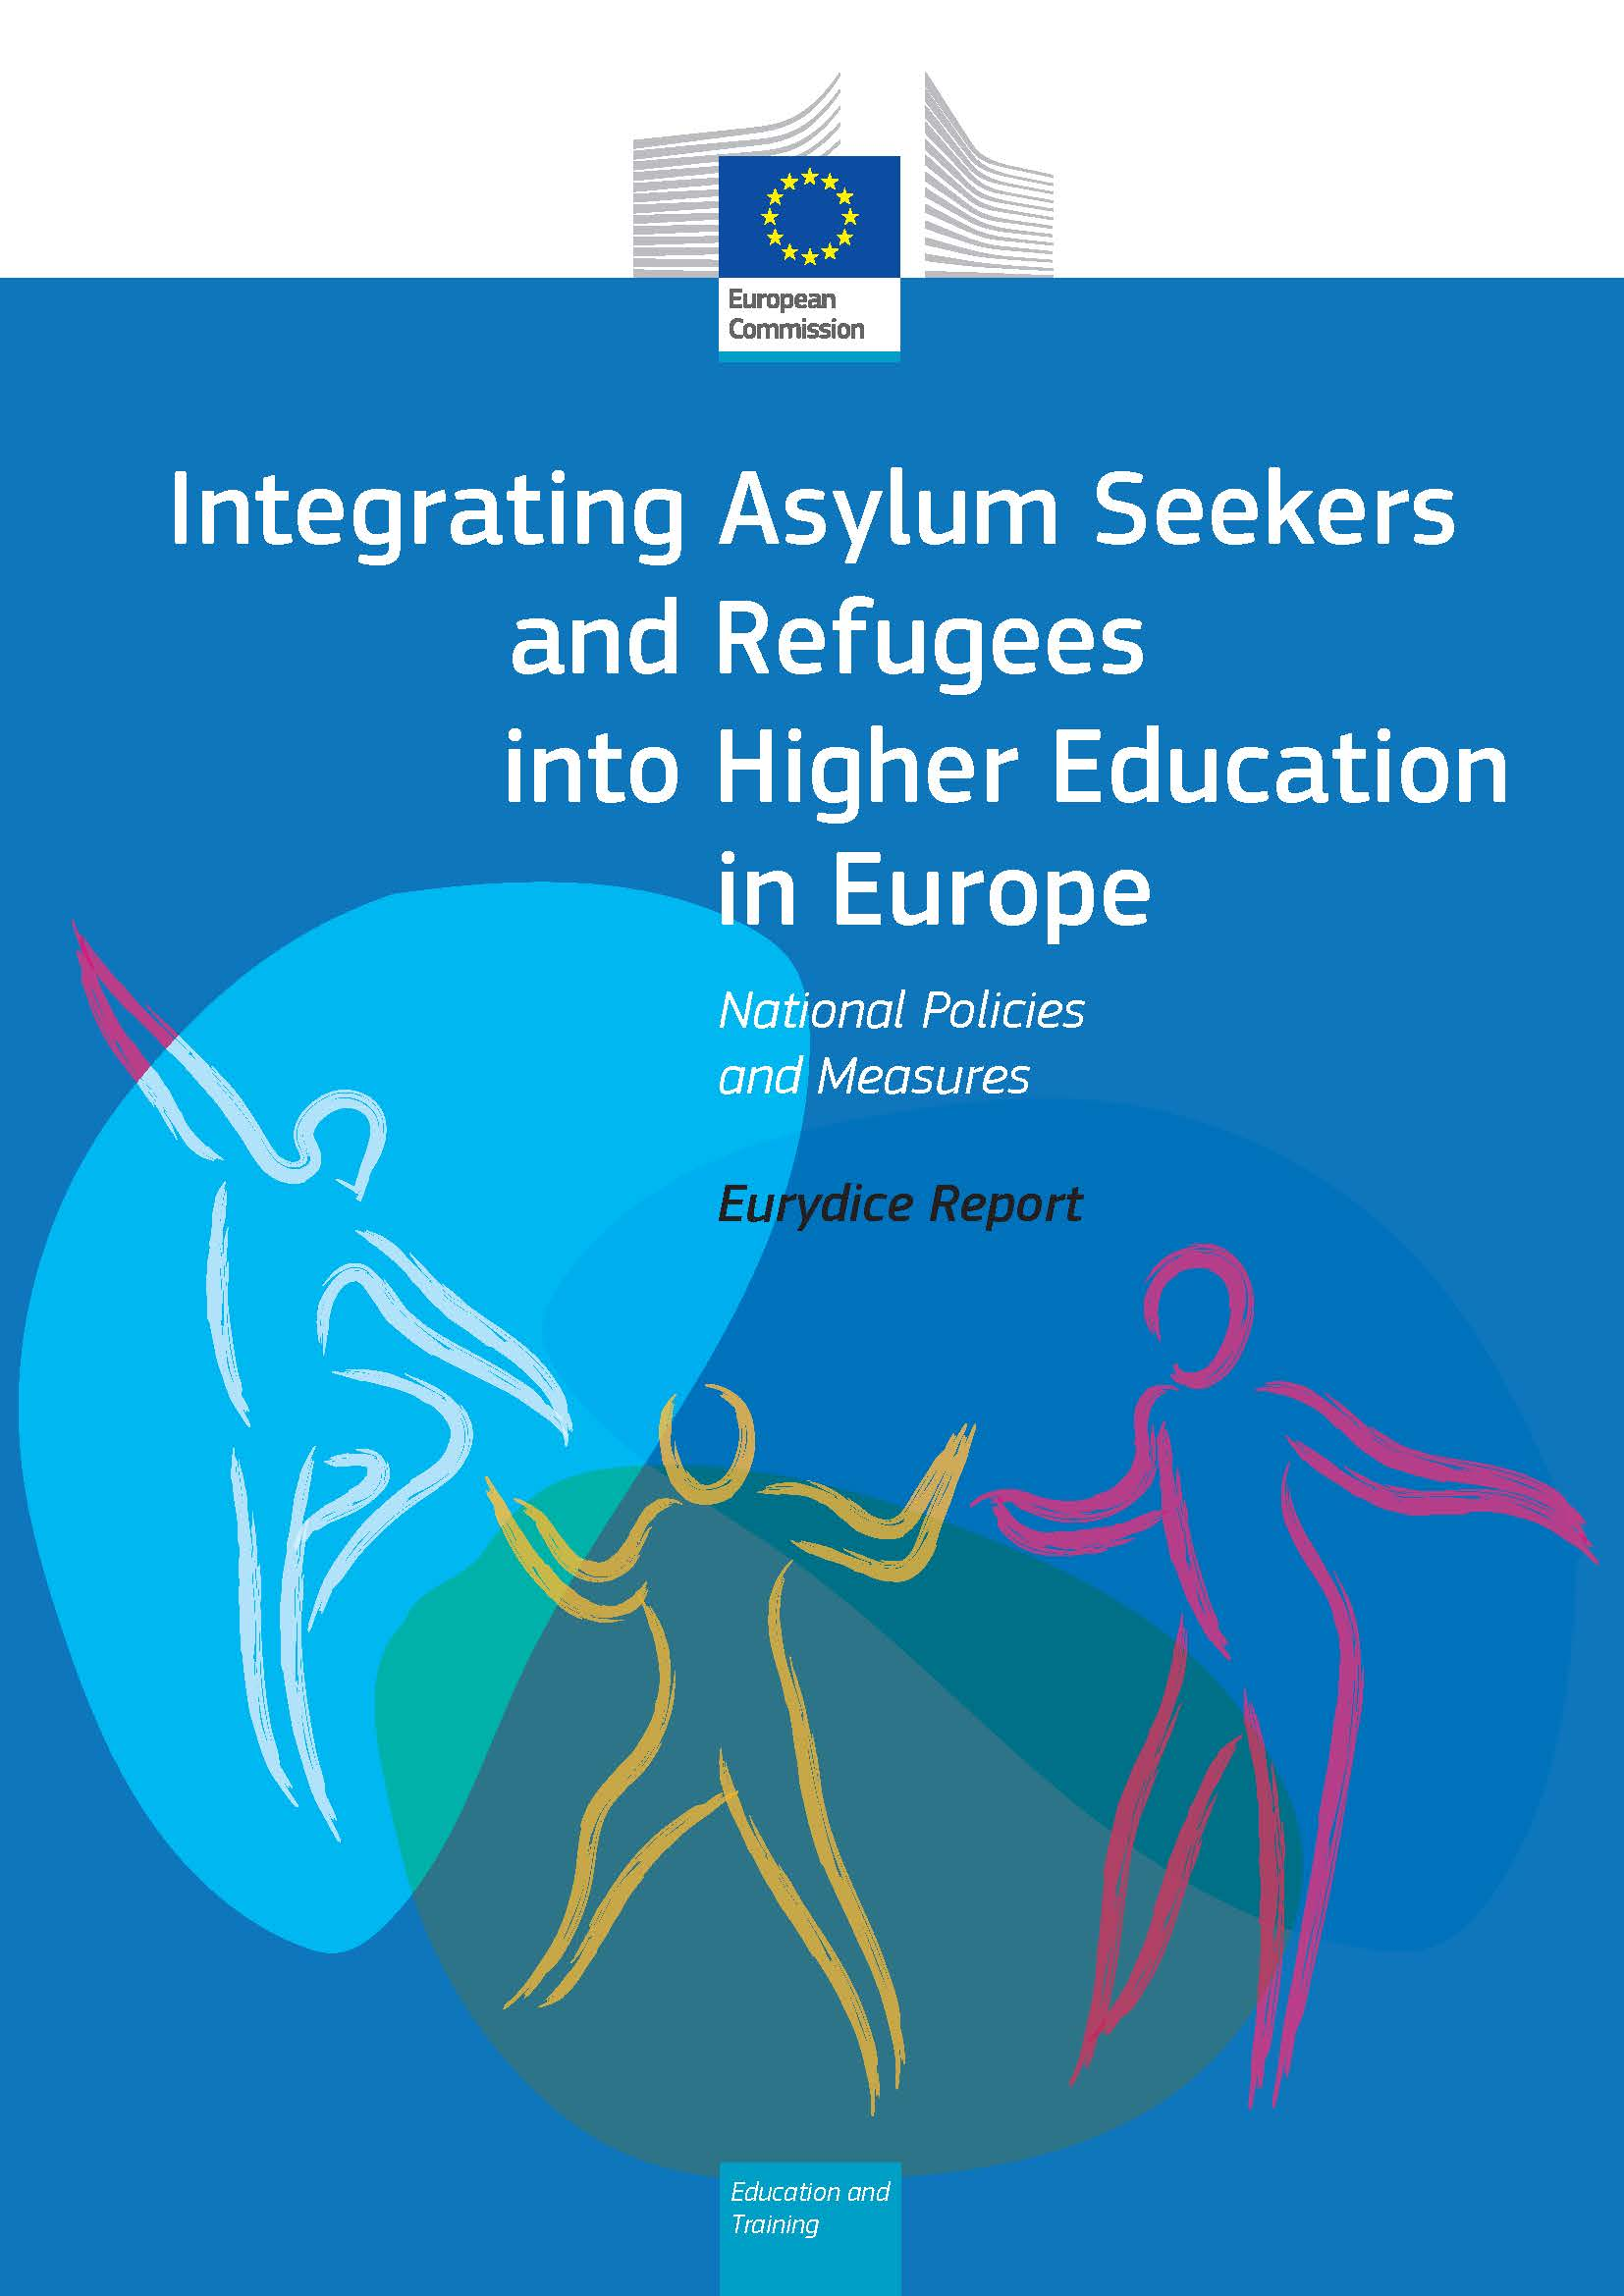 Integrating Asylum Seekers and Refugees into Higher Education in Europe_ National Policies and Measures  - Cover_Pagina_1